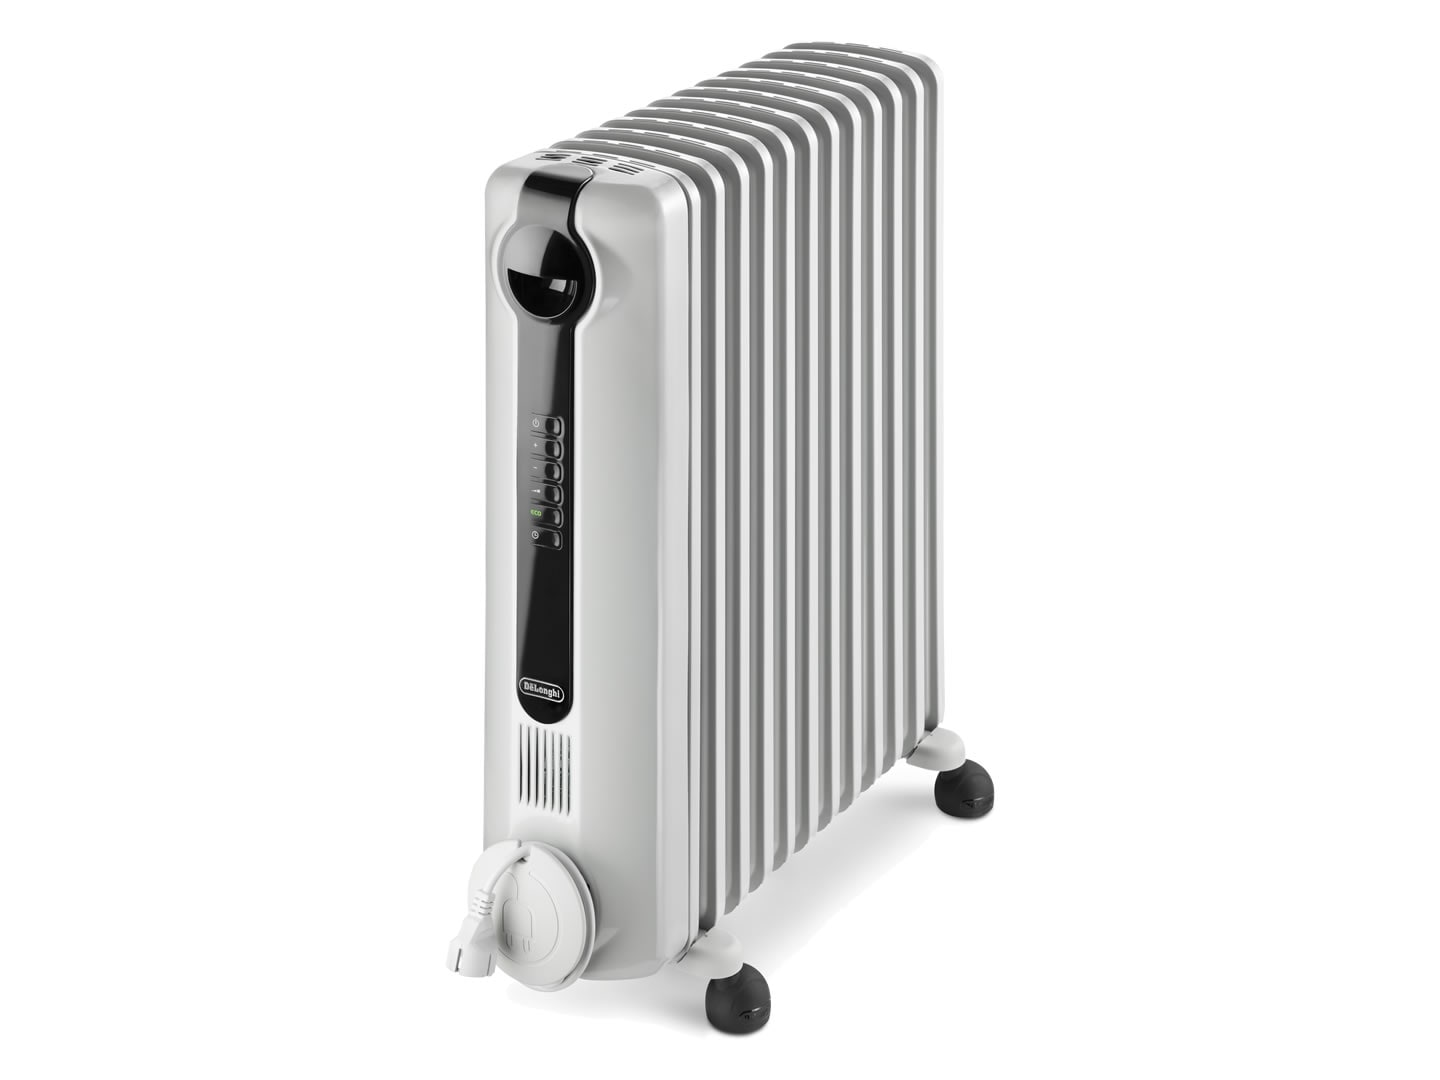 TRRS1224E Radia S Digital Oil Column Heater 2400W